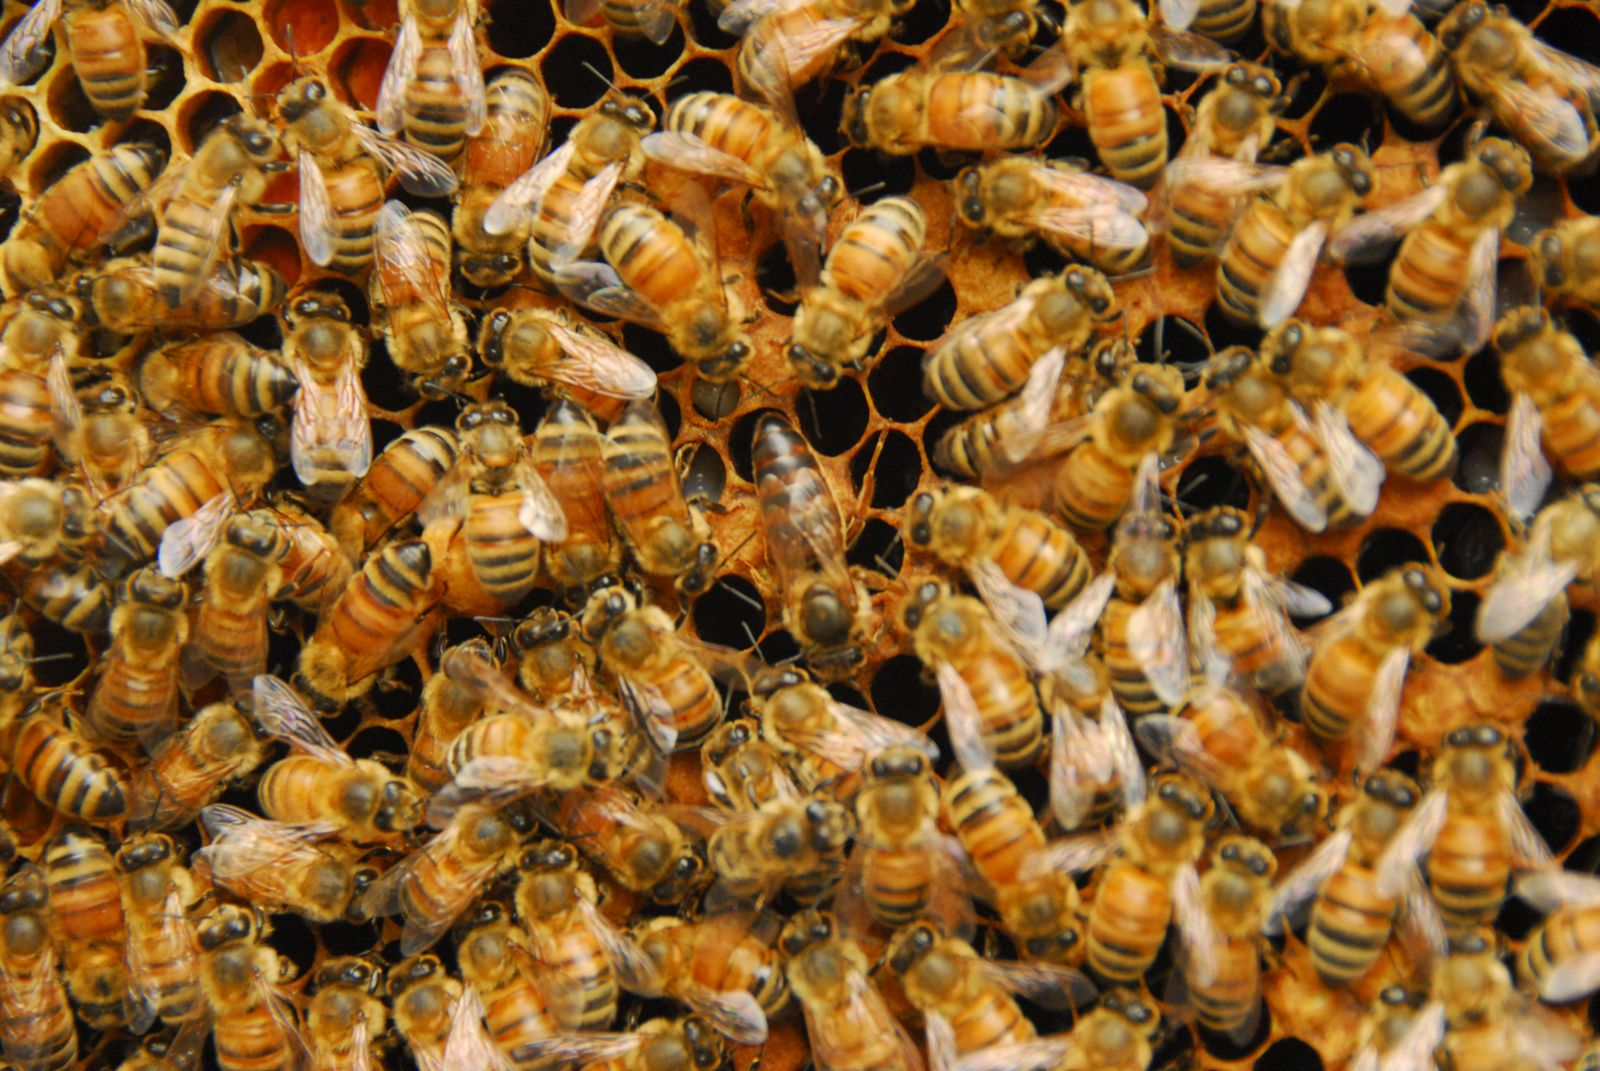 queen bee laying eggs - photo #21